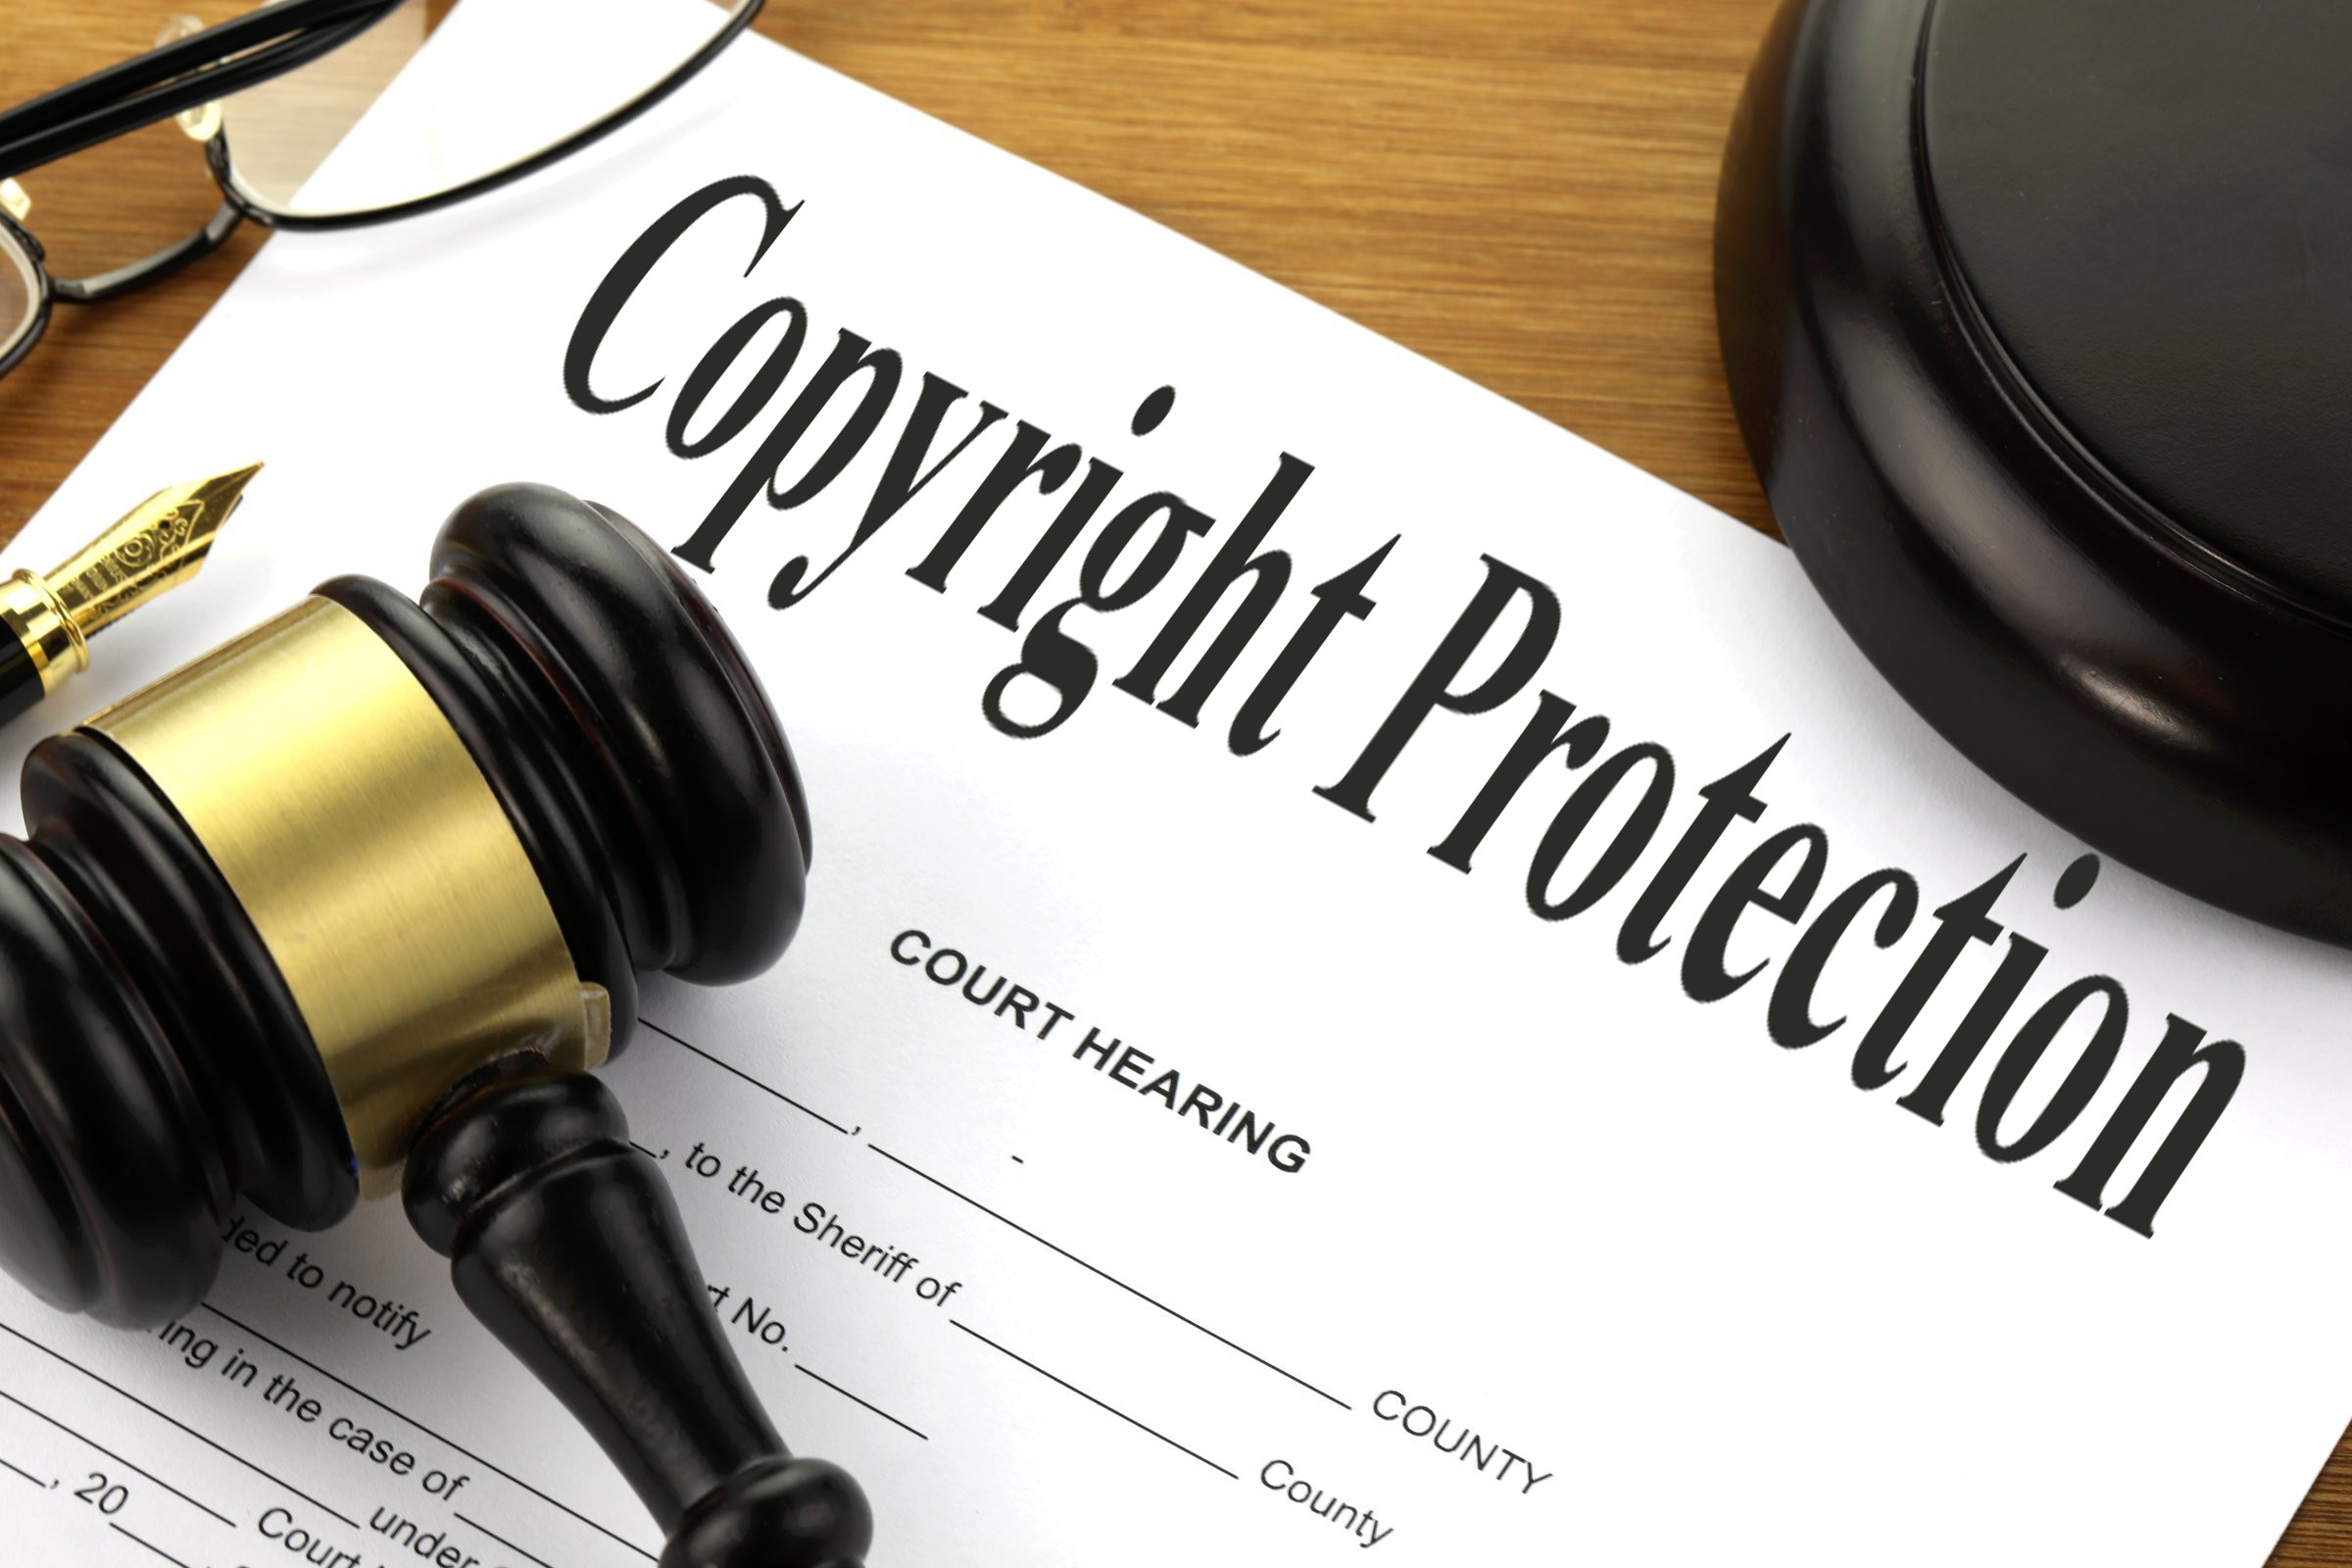 Protect Your Work With Copyrights